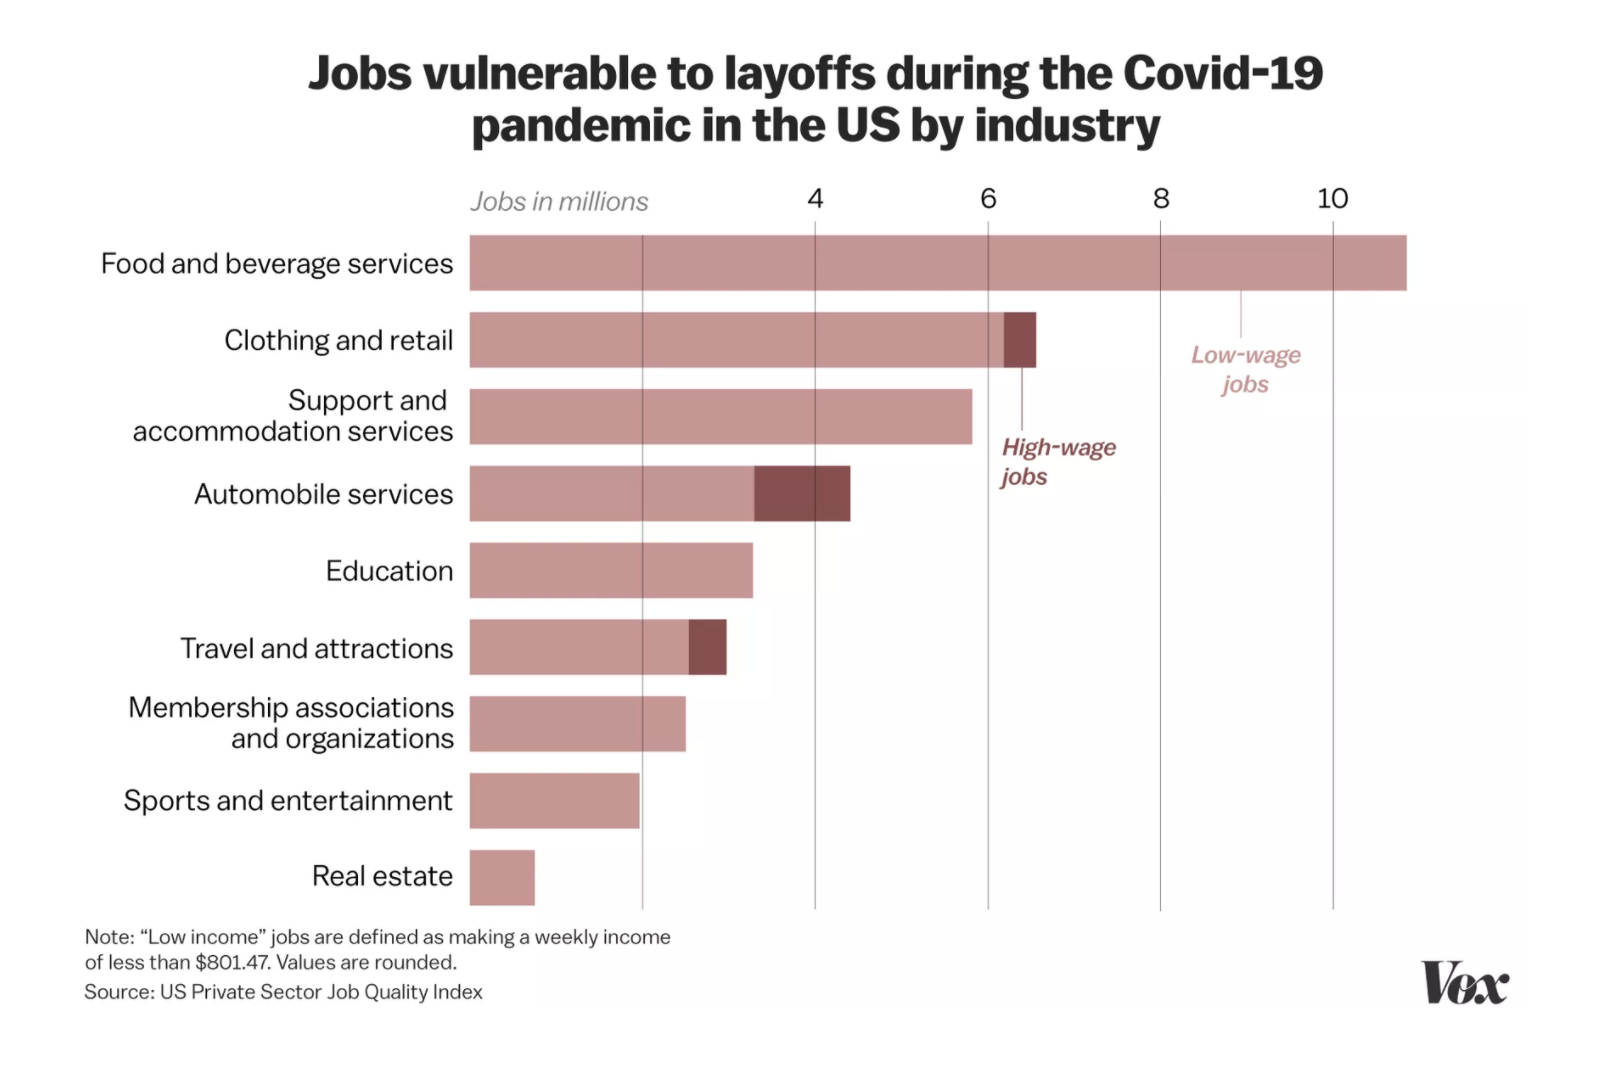 The US jobs most vulnerable to COVID-19